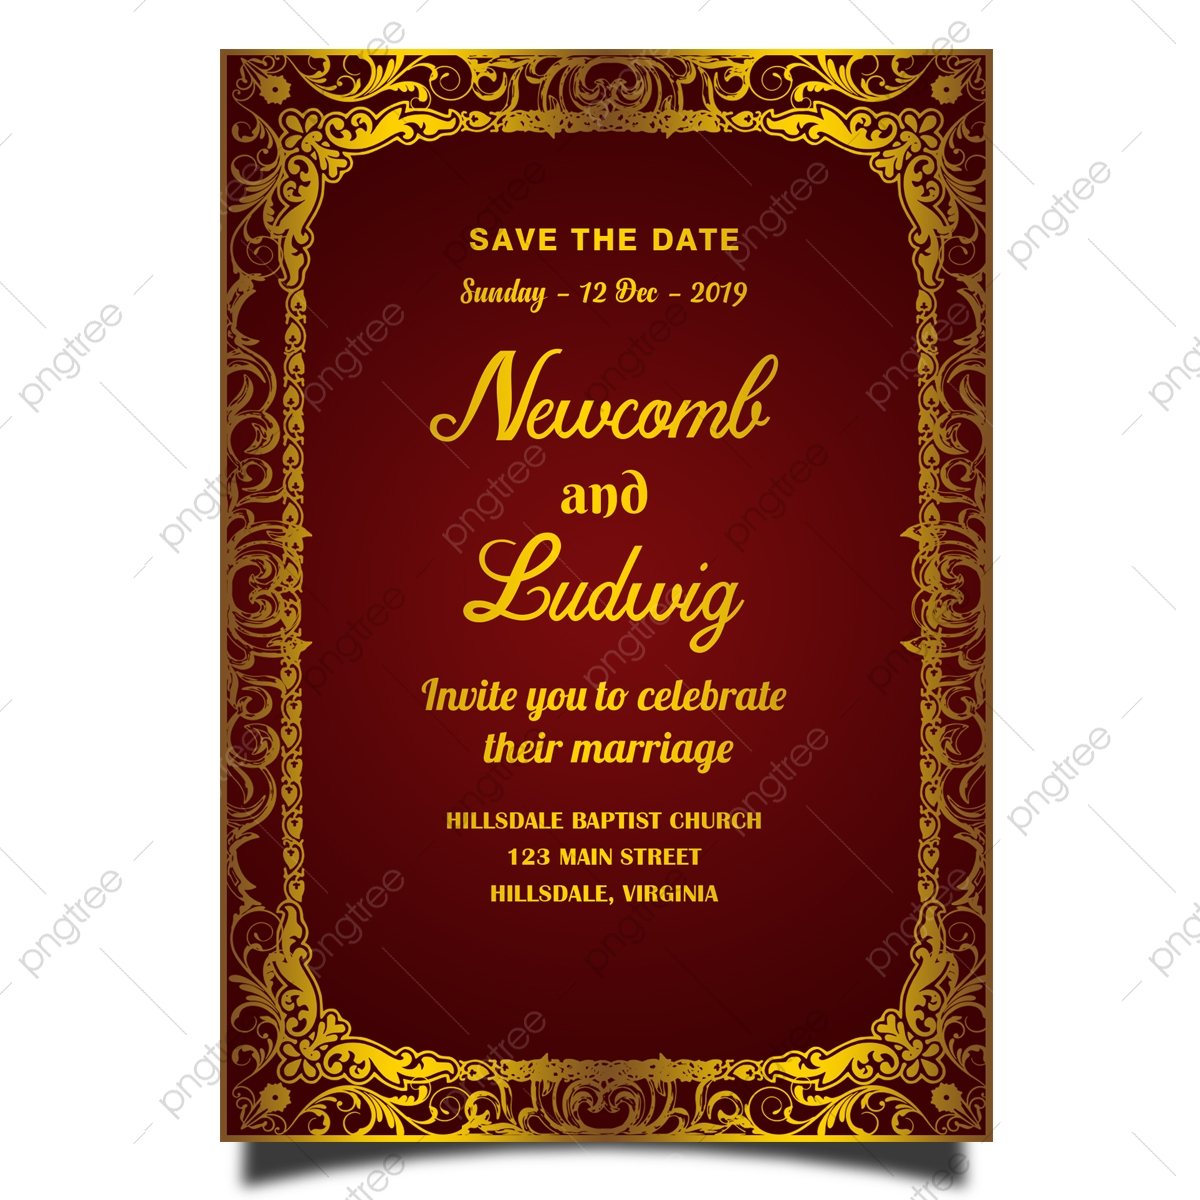 https pngtree com freepng royal wedding invitation card template with gold frame 4176338 html